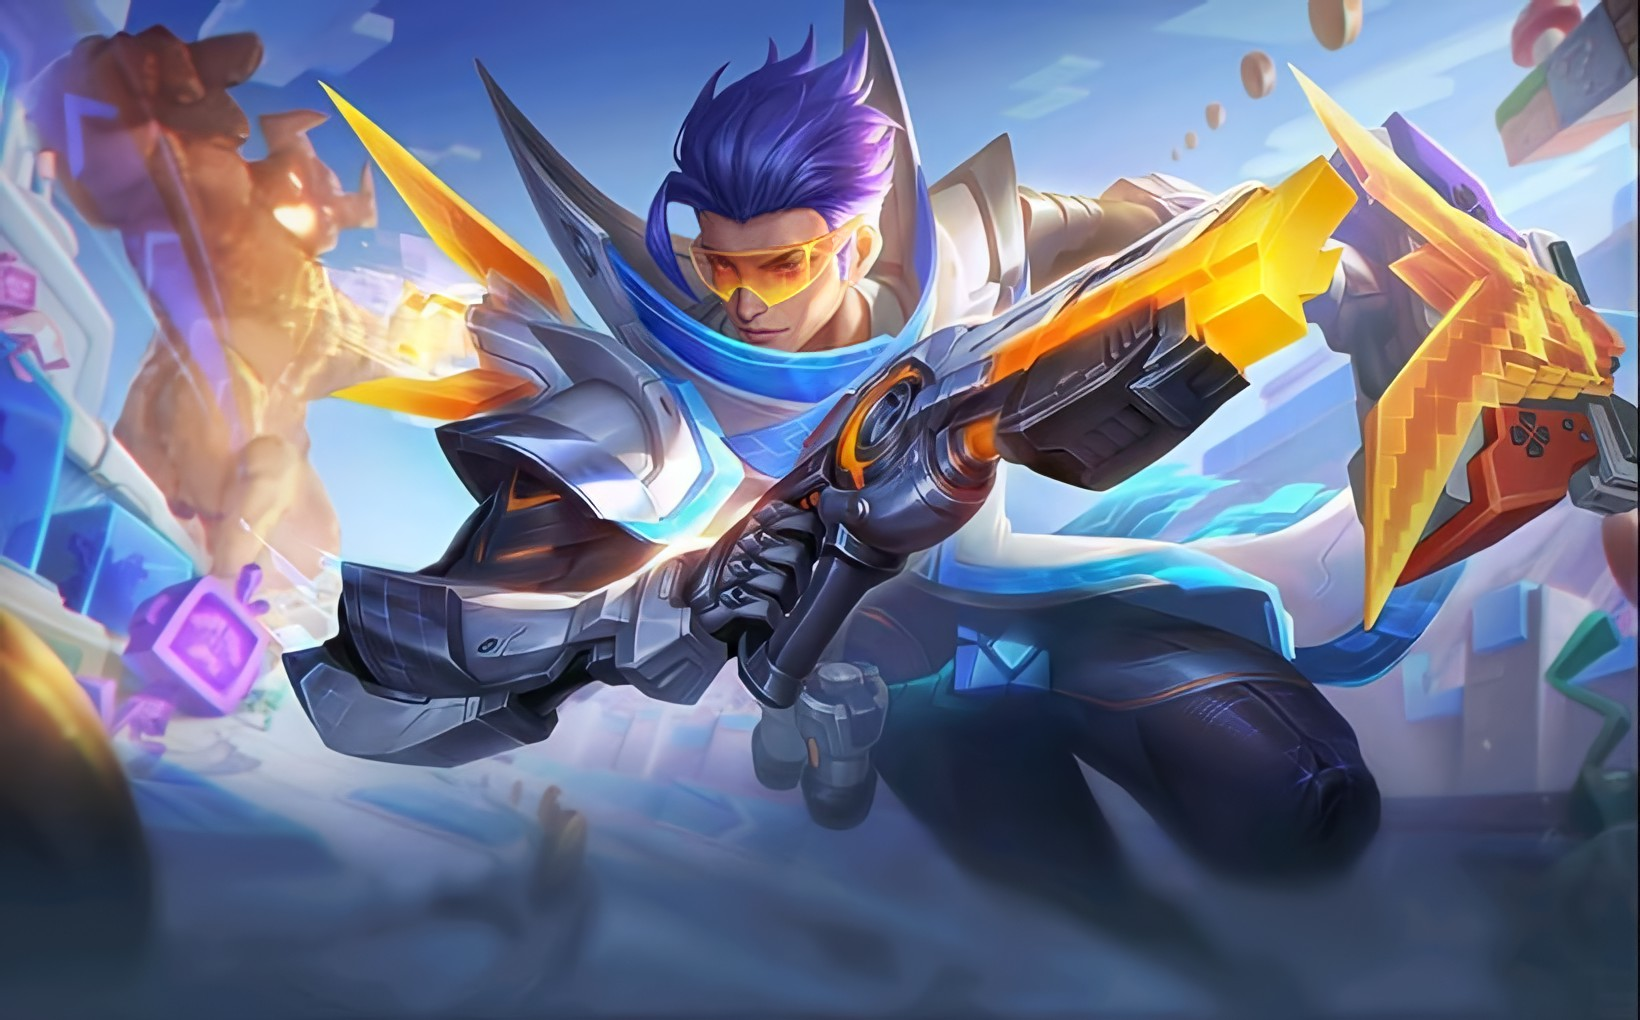 Mobile Legends Bang Bang Wallpaper Gallery If so you should subscribe! mobile legends bang bang wallpaper gallery